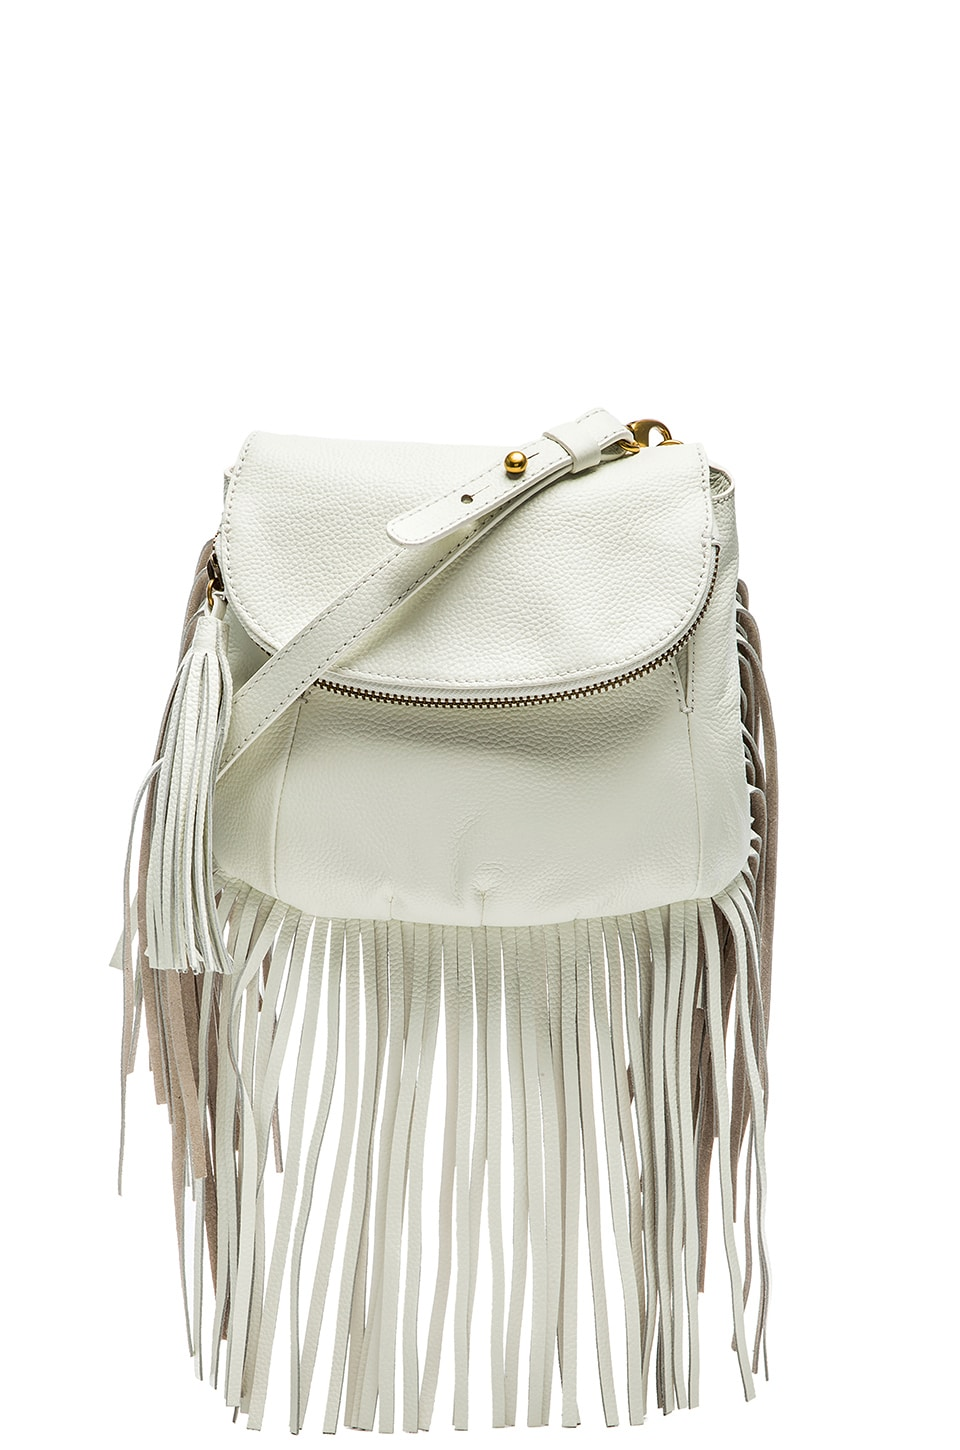 Twelfth Street By Cynthia Vincent Autum Crossbody in White